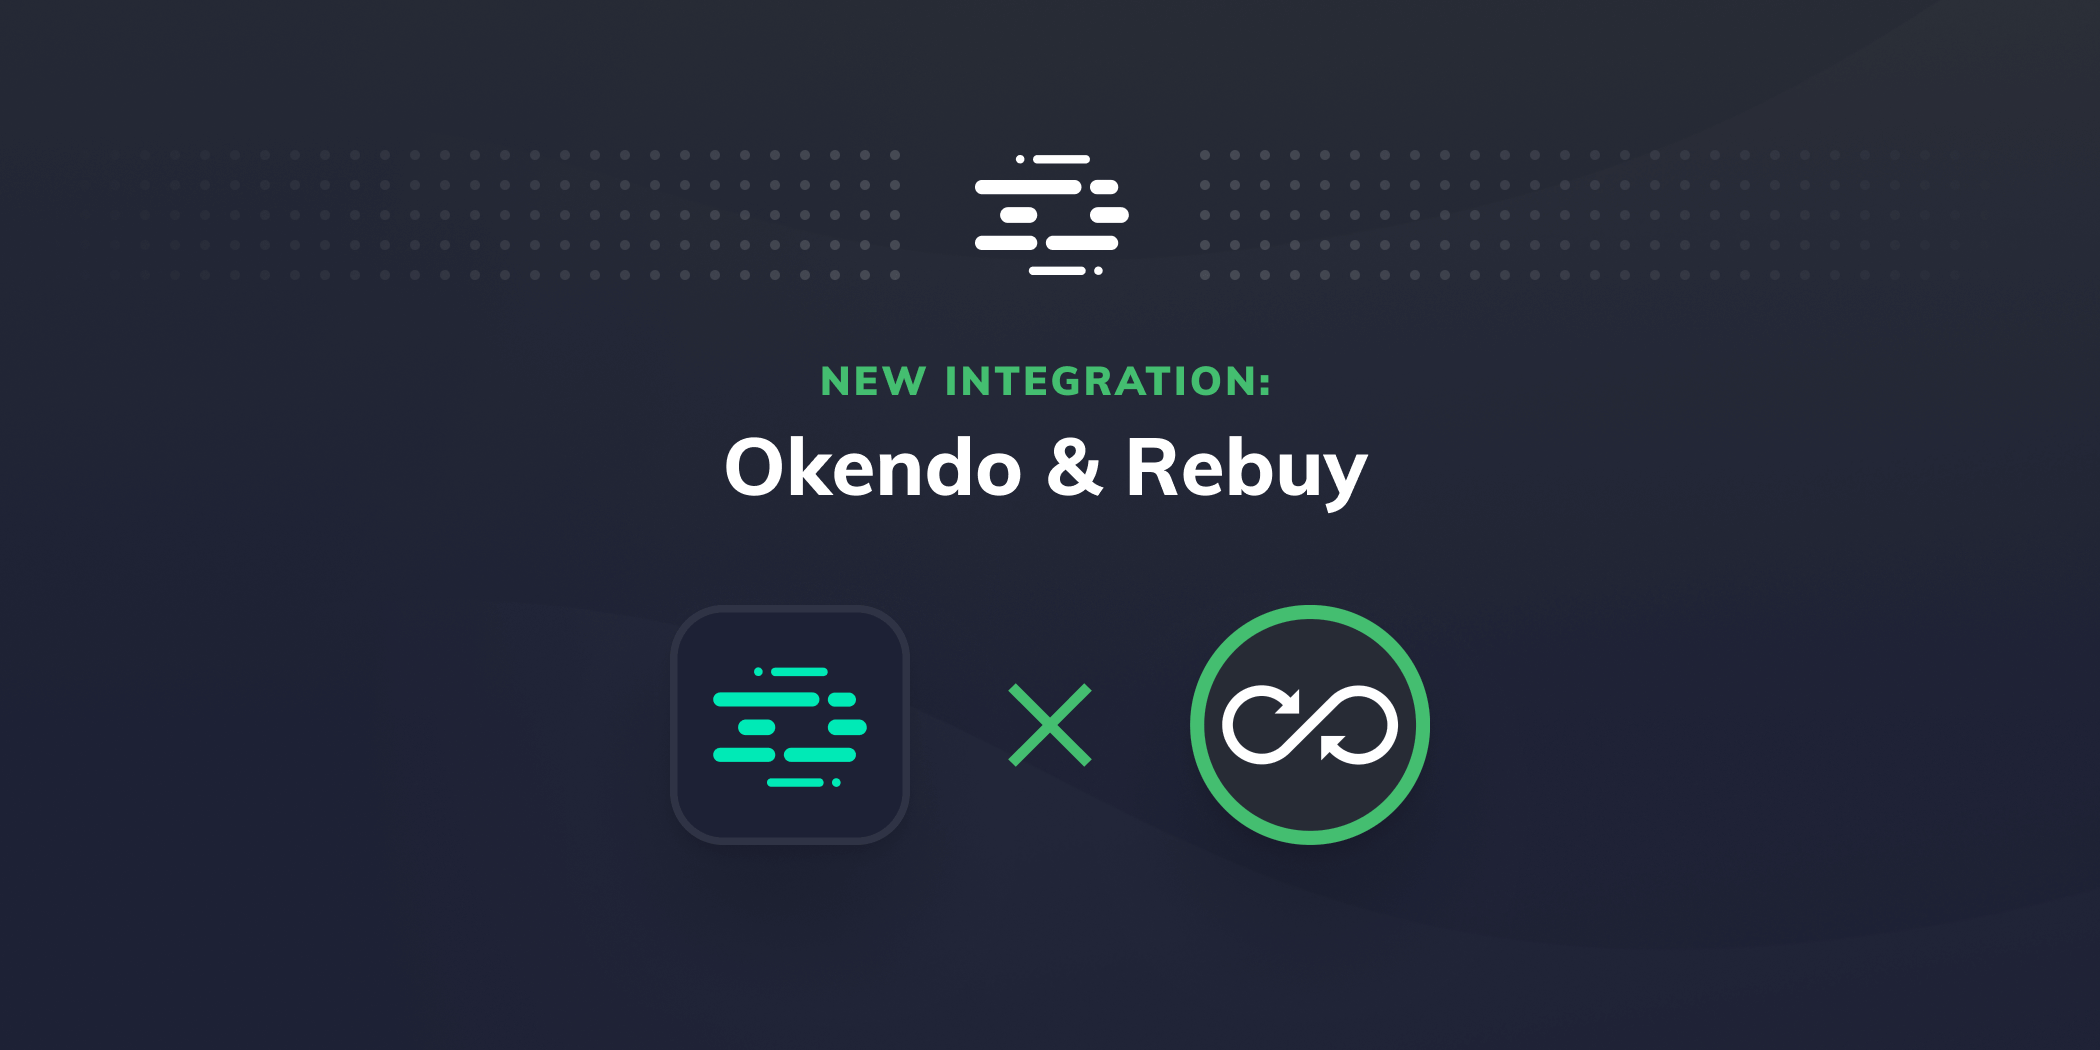 New Integration: Okendo & Rebuy